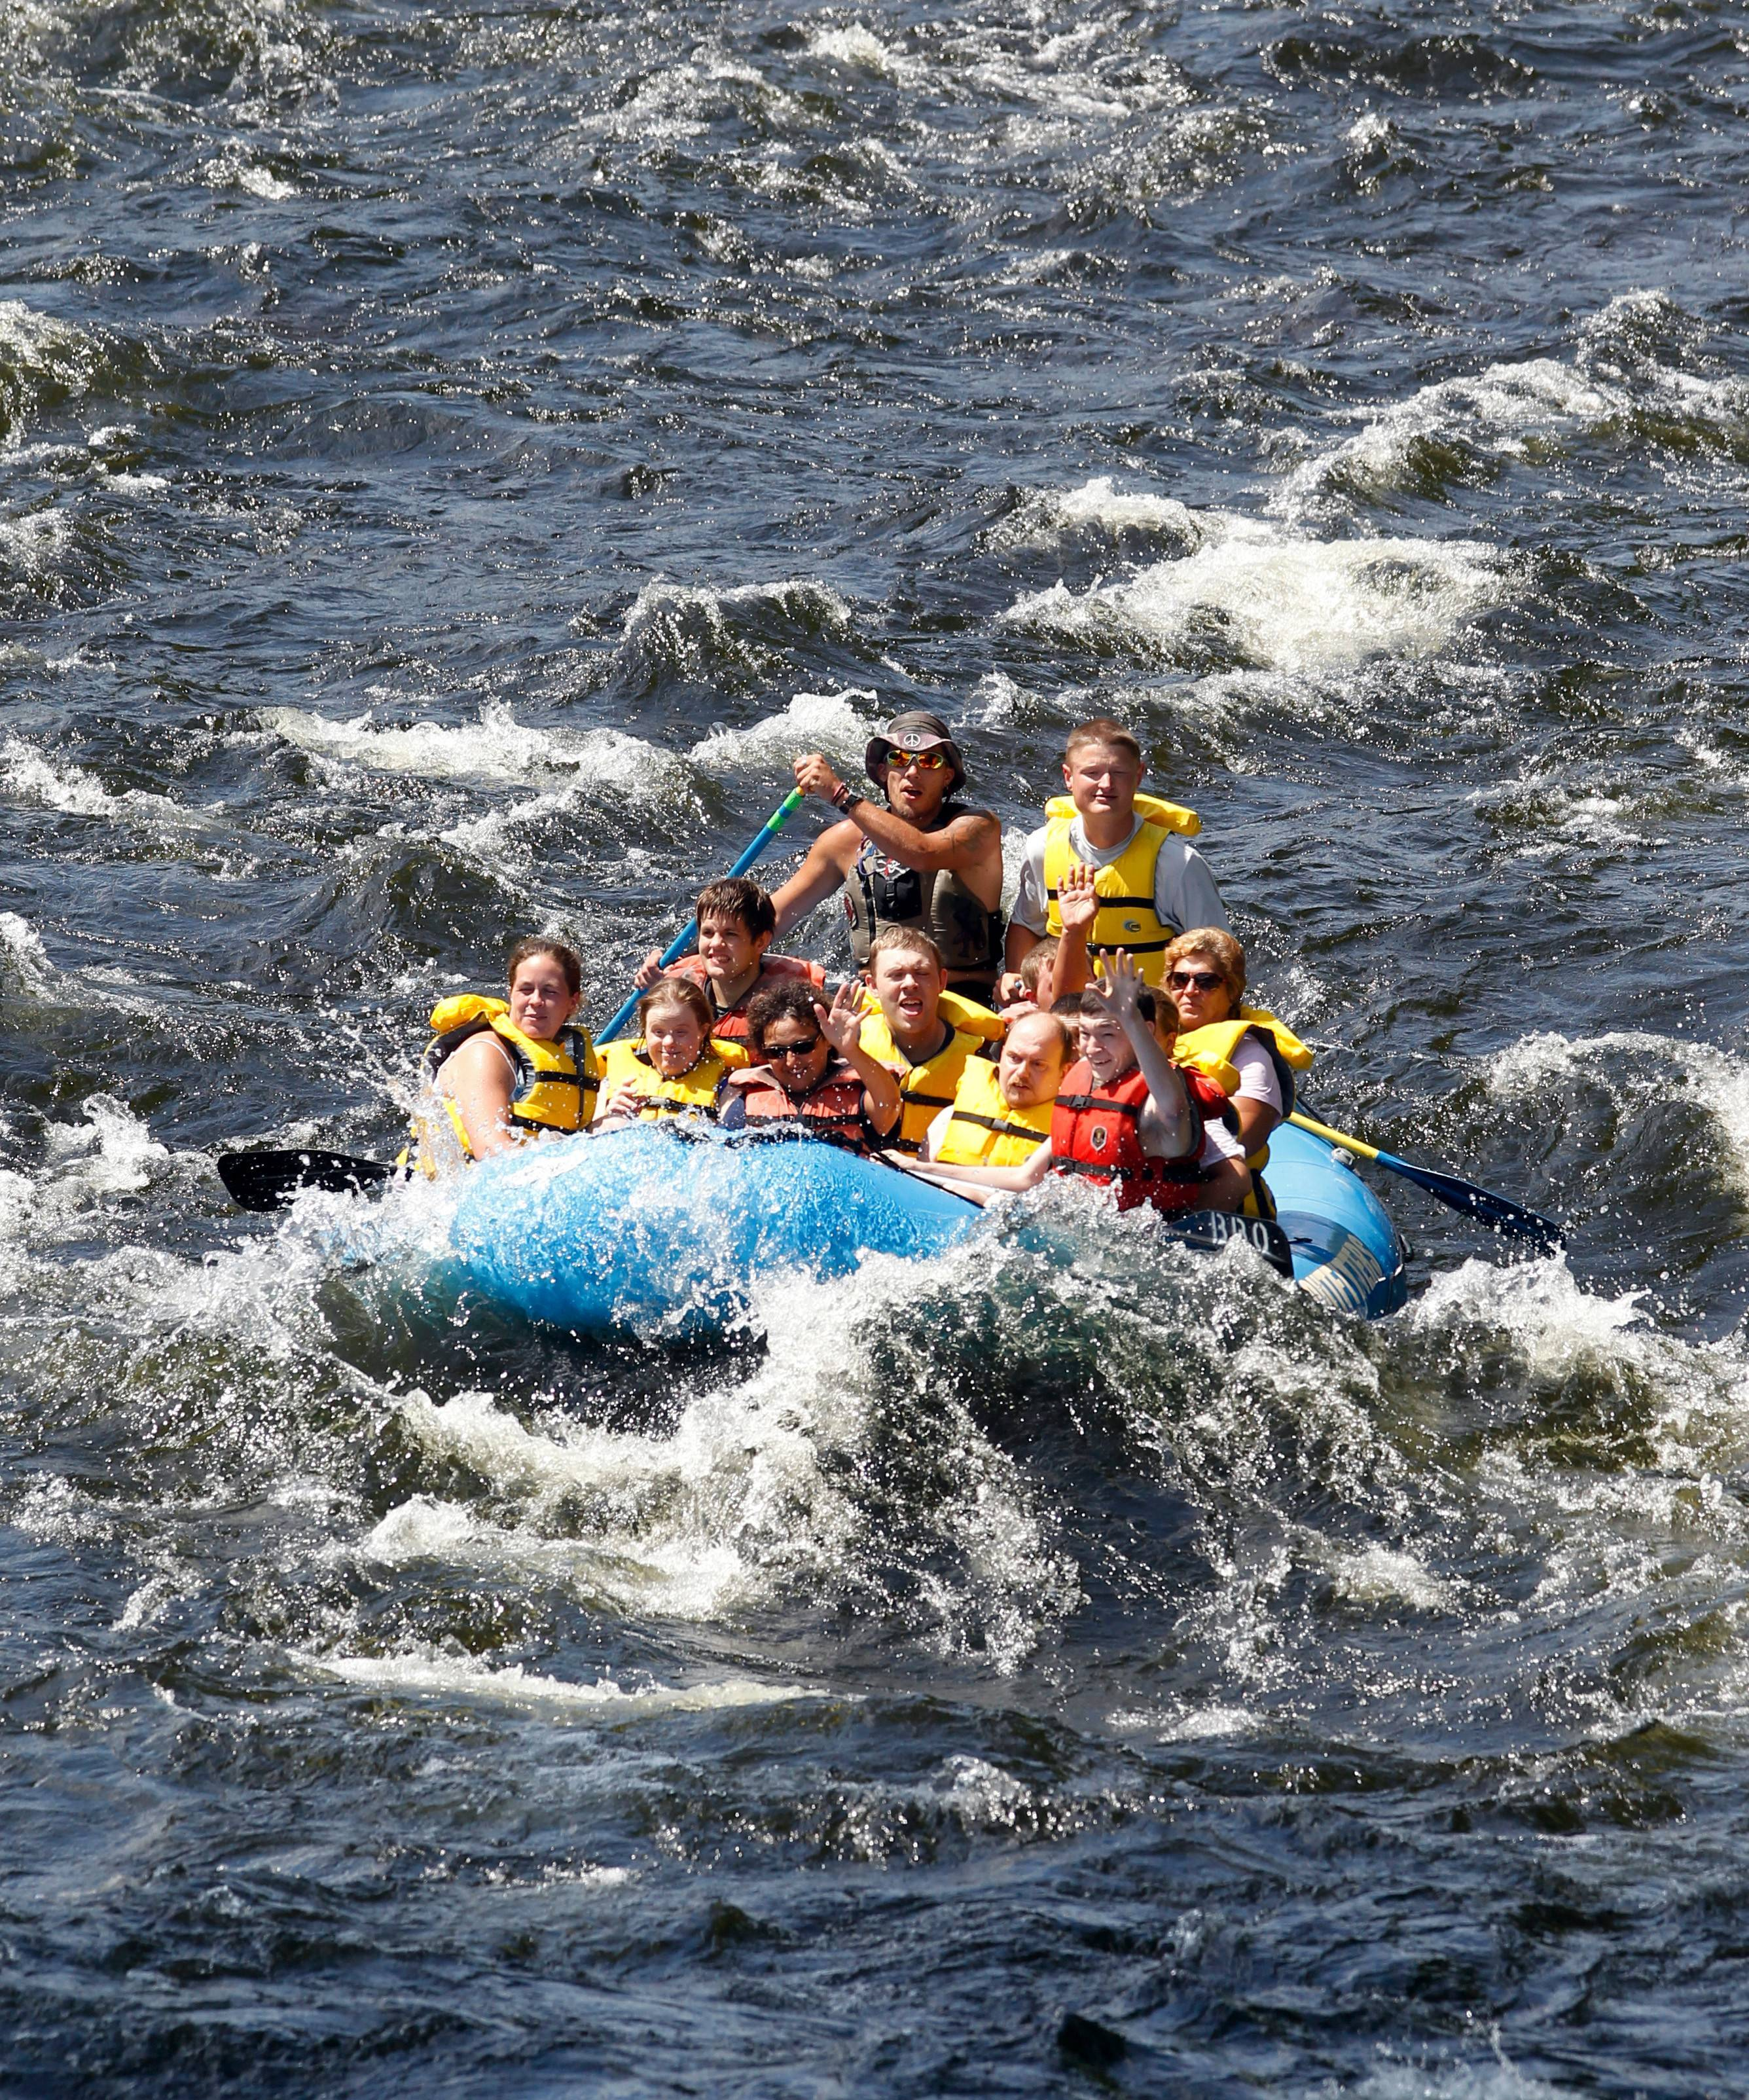 Whitewater rafters head down the Sacandaga River in Lake Luzerne, N.Y. Whitewater rafting, which is both thrilling and basically safe, often appeal to teenagers.